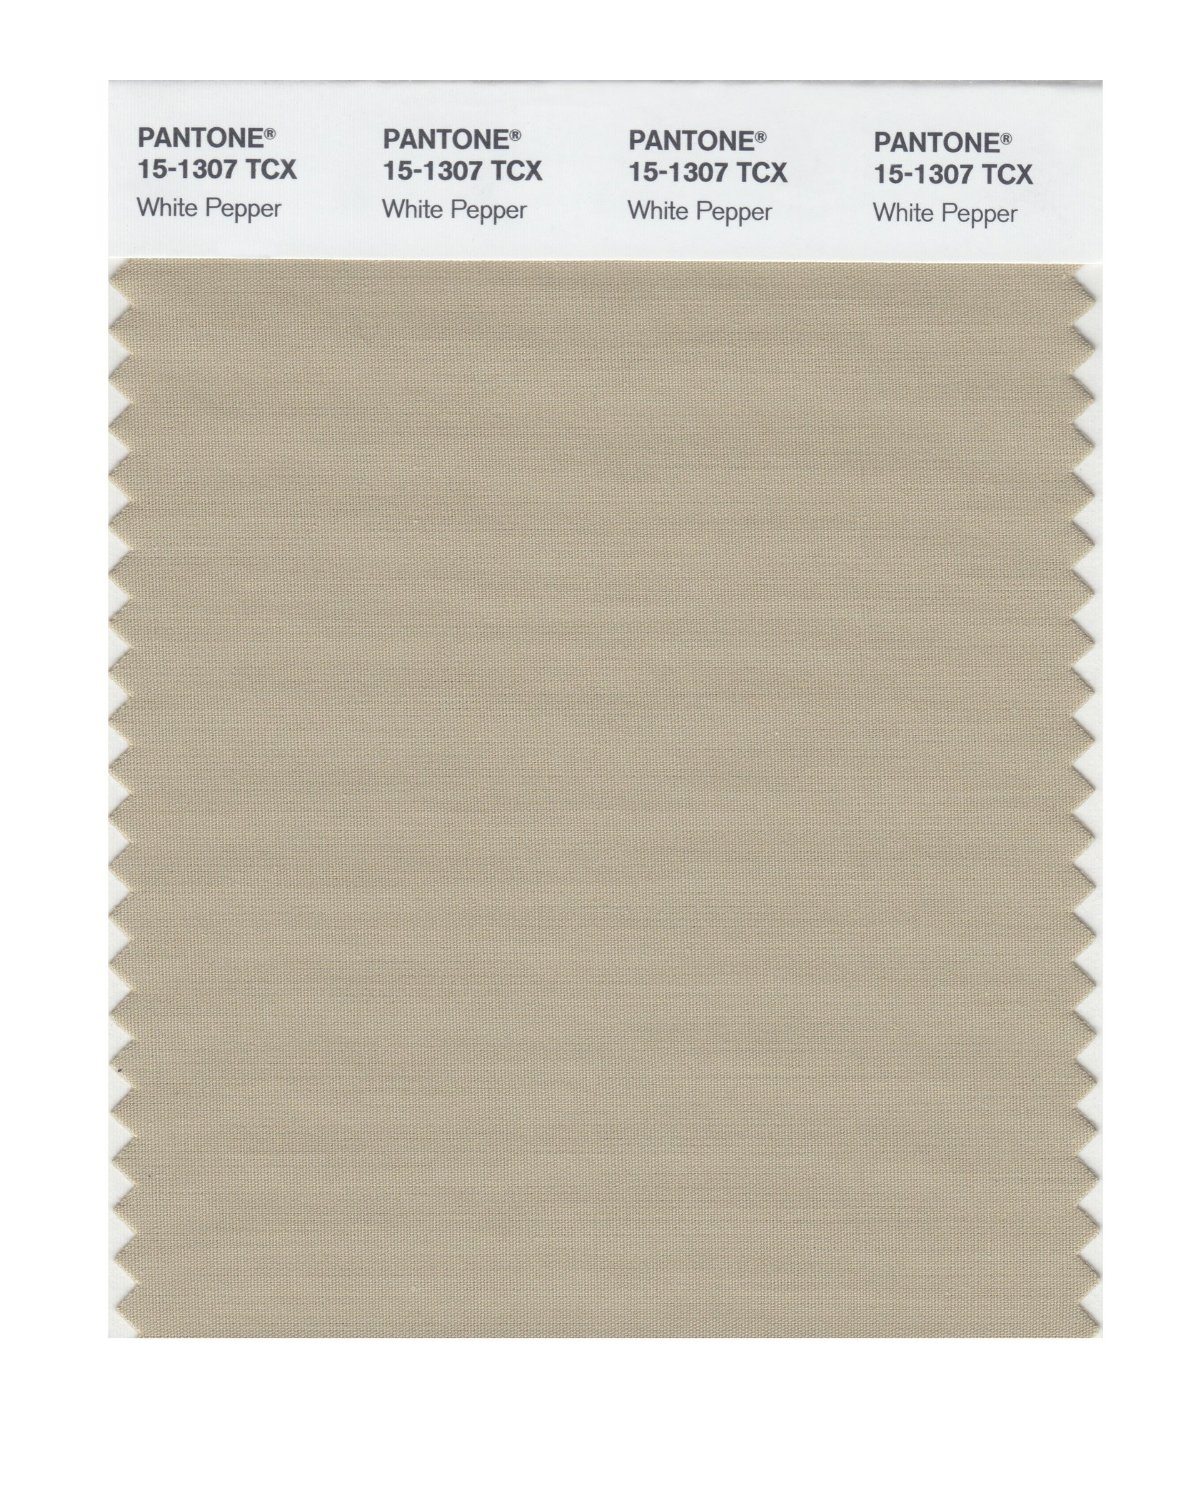 Pantone Smart Swatch 15-1307 White Pepper